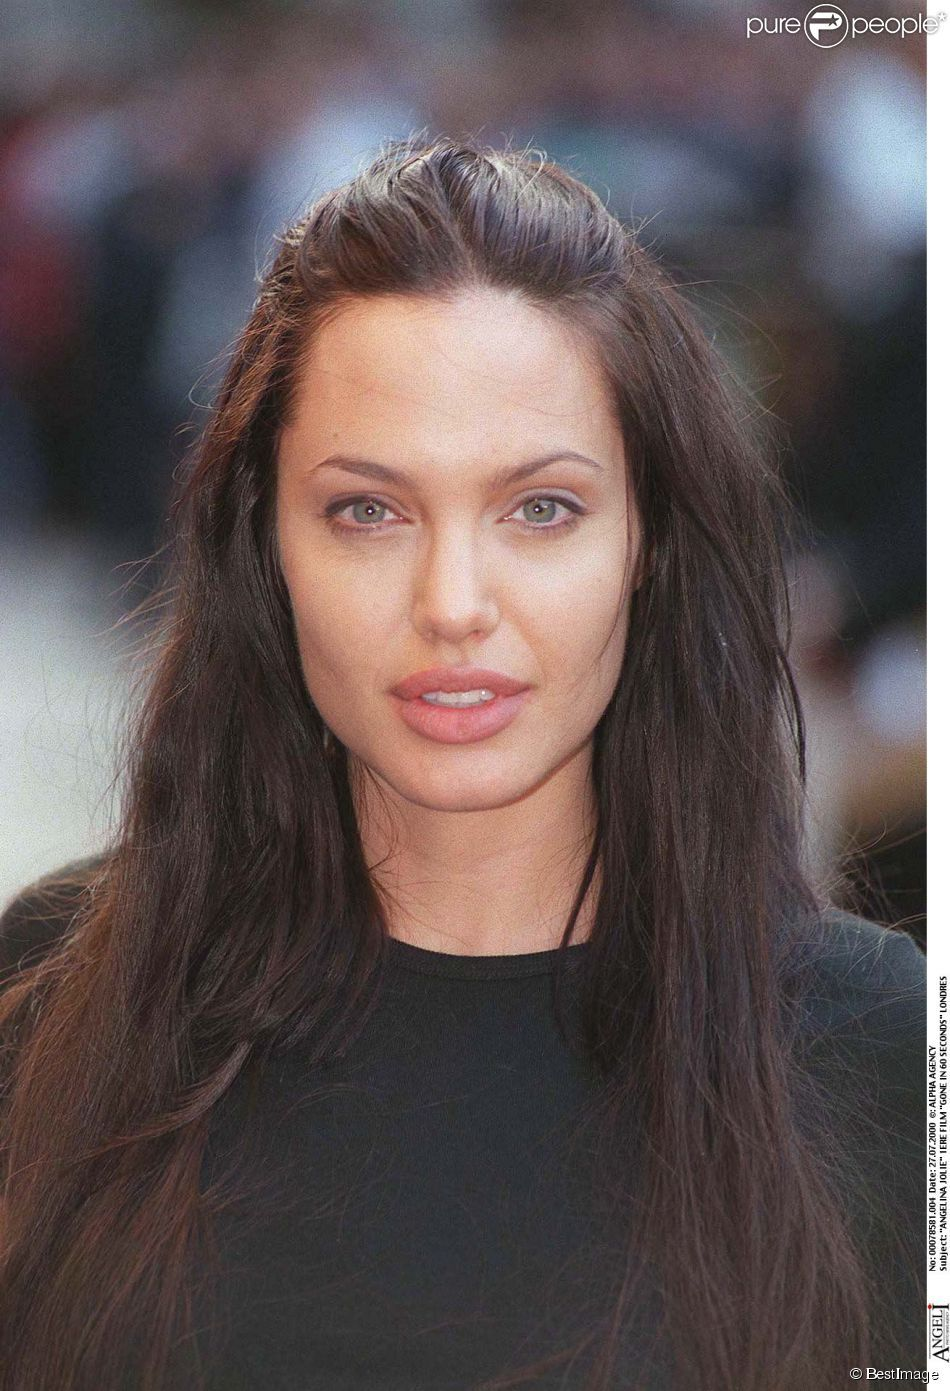 Epingle Sur Angelina Jolie Beaute